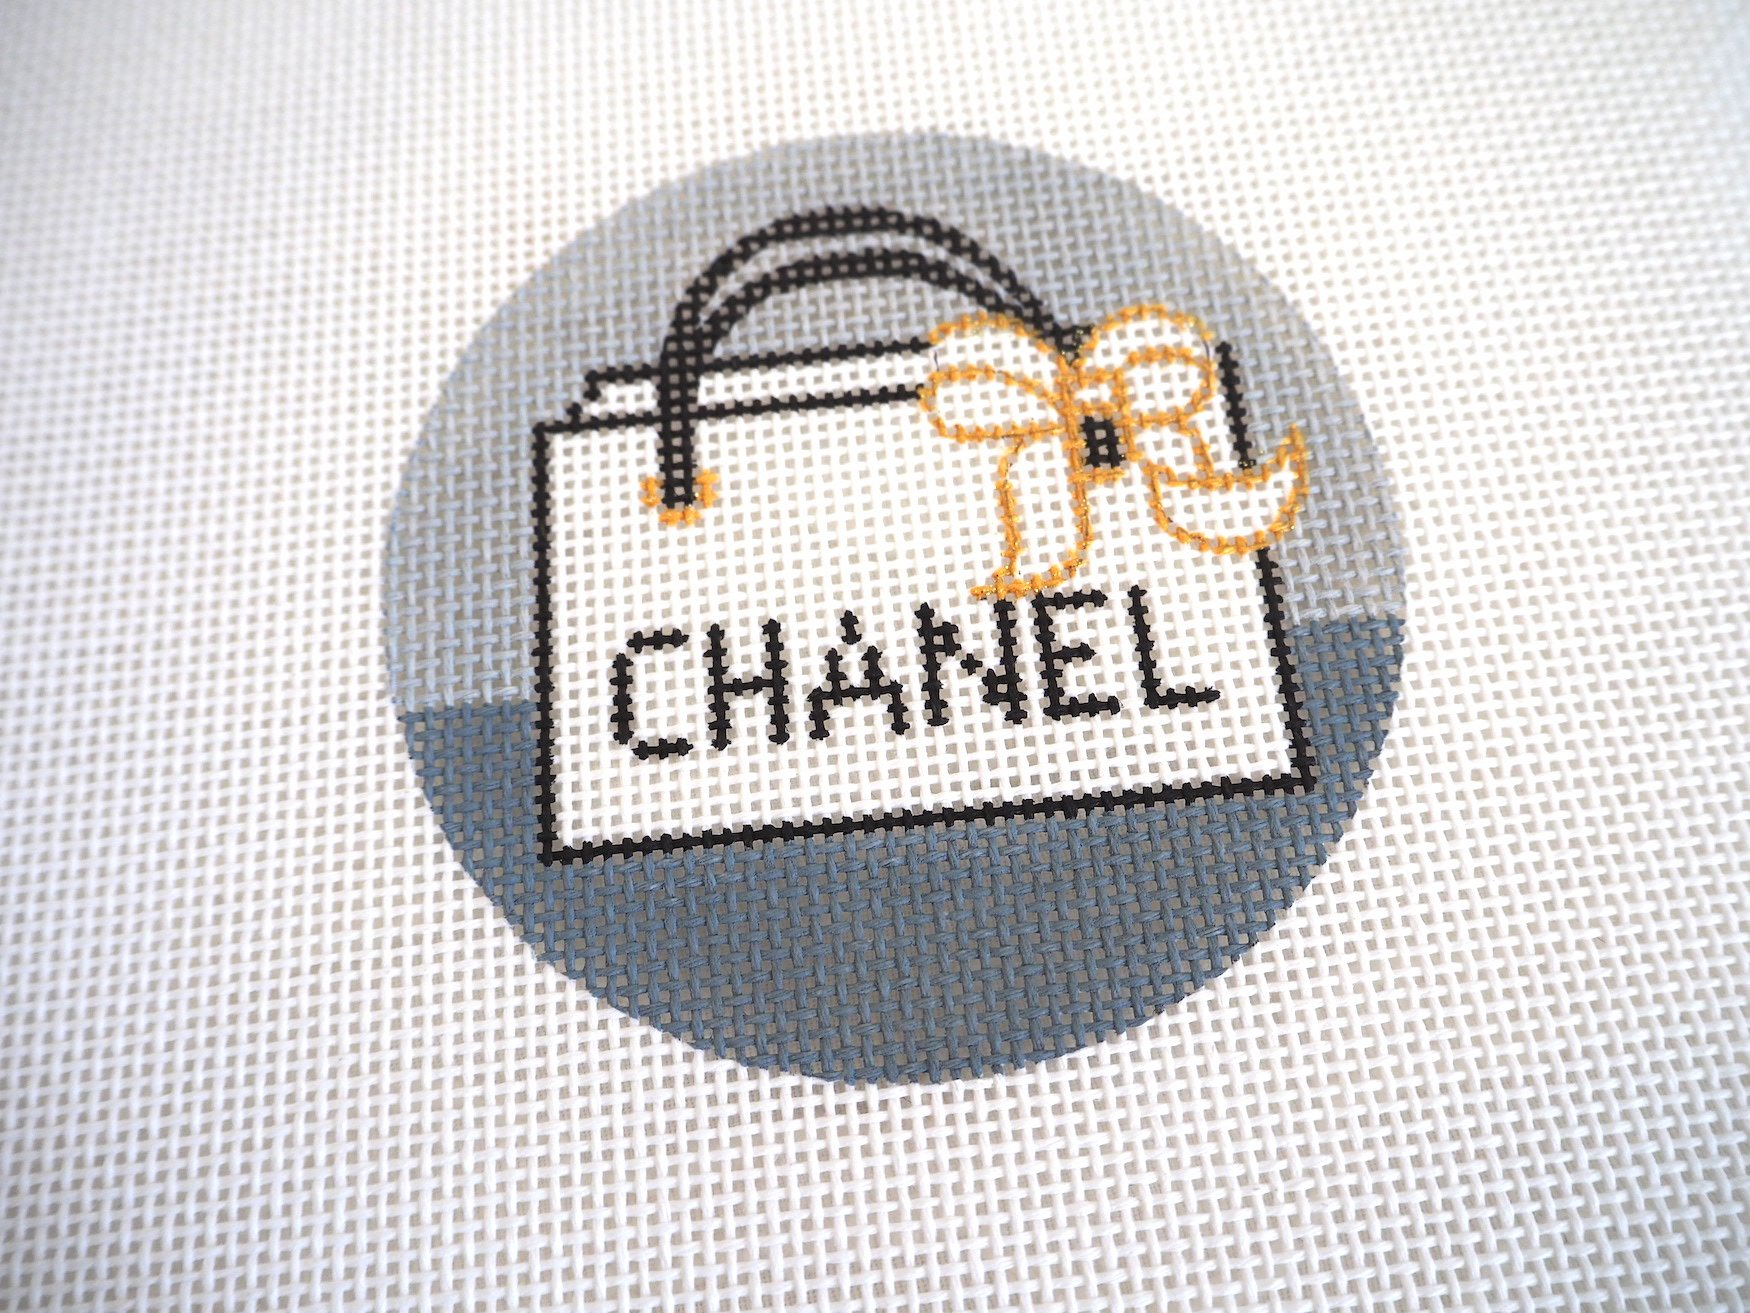 Chanel Bag needlepoint